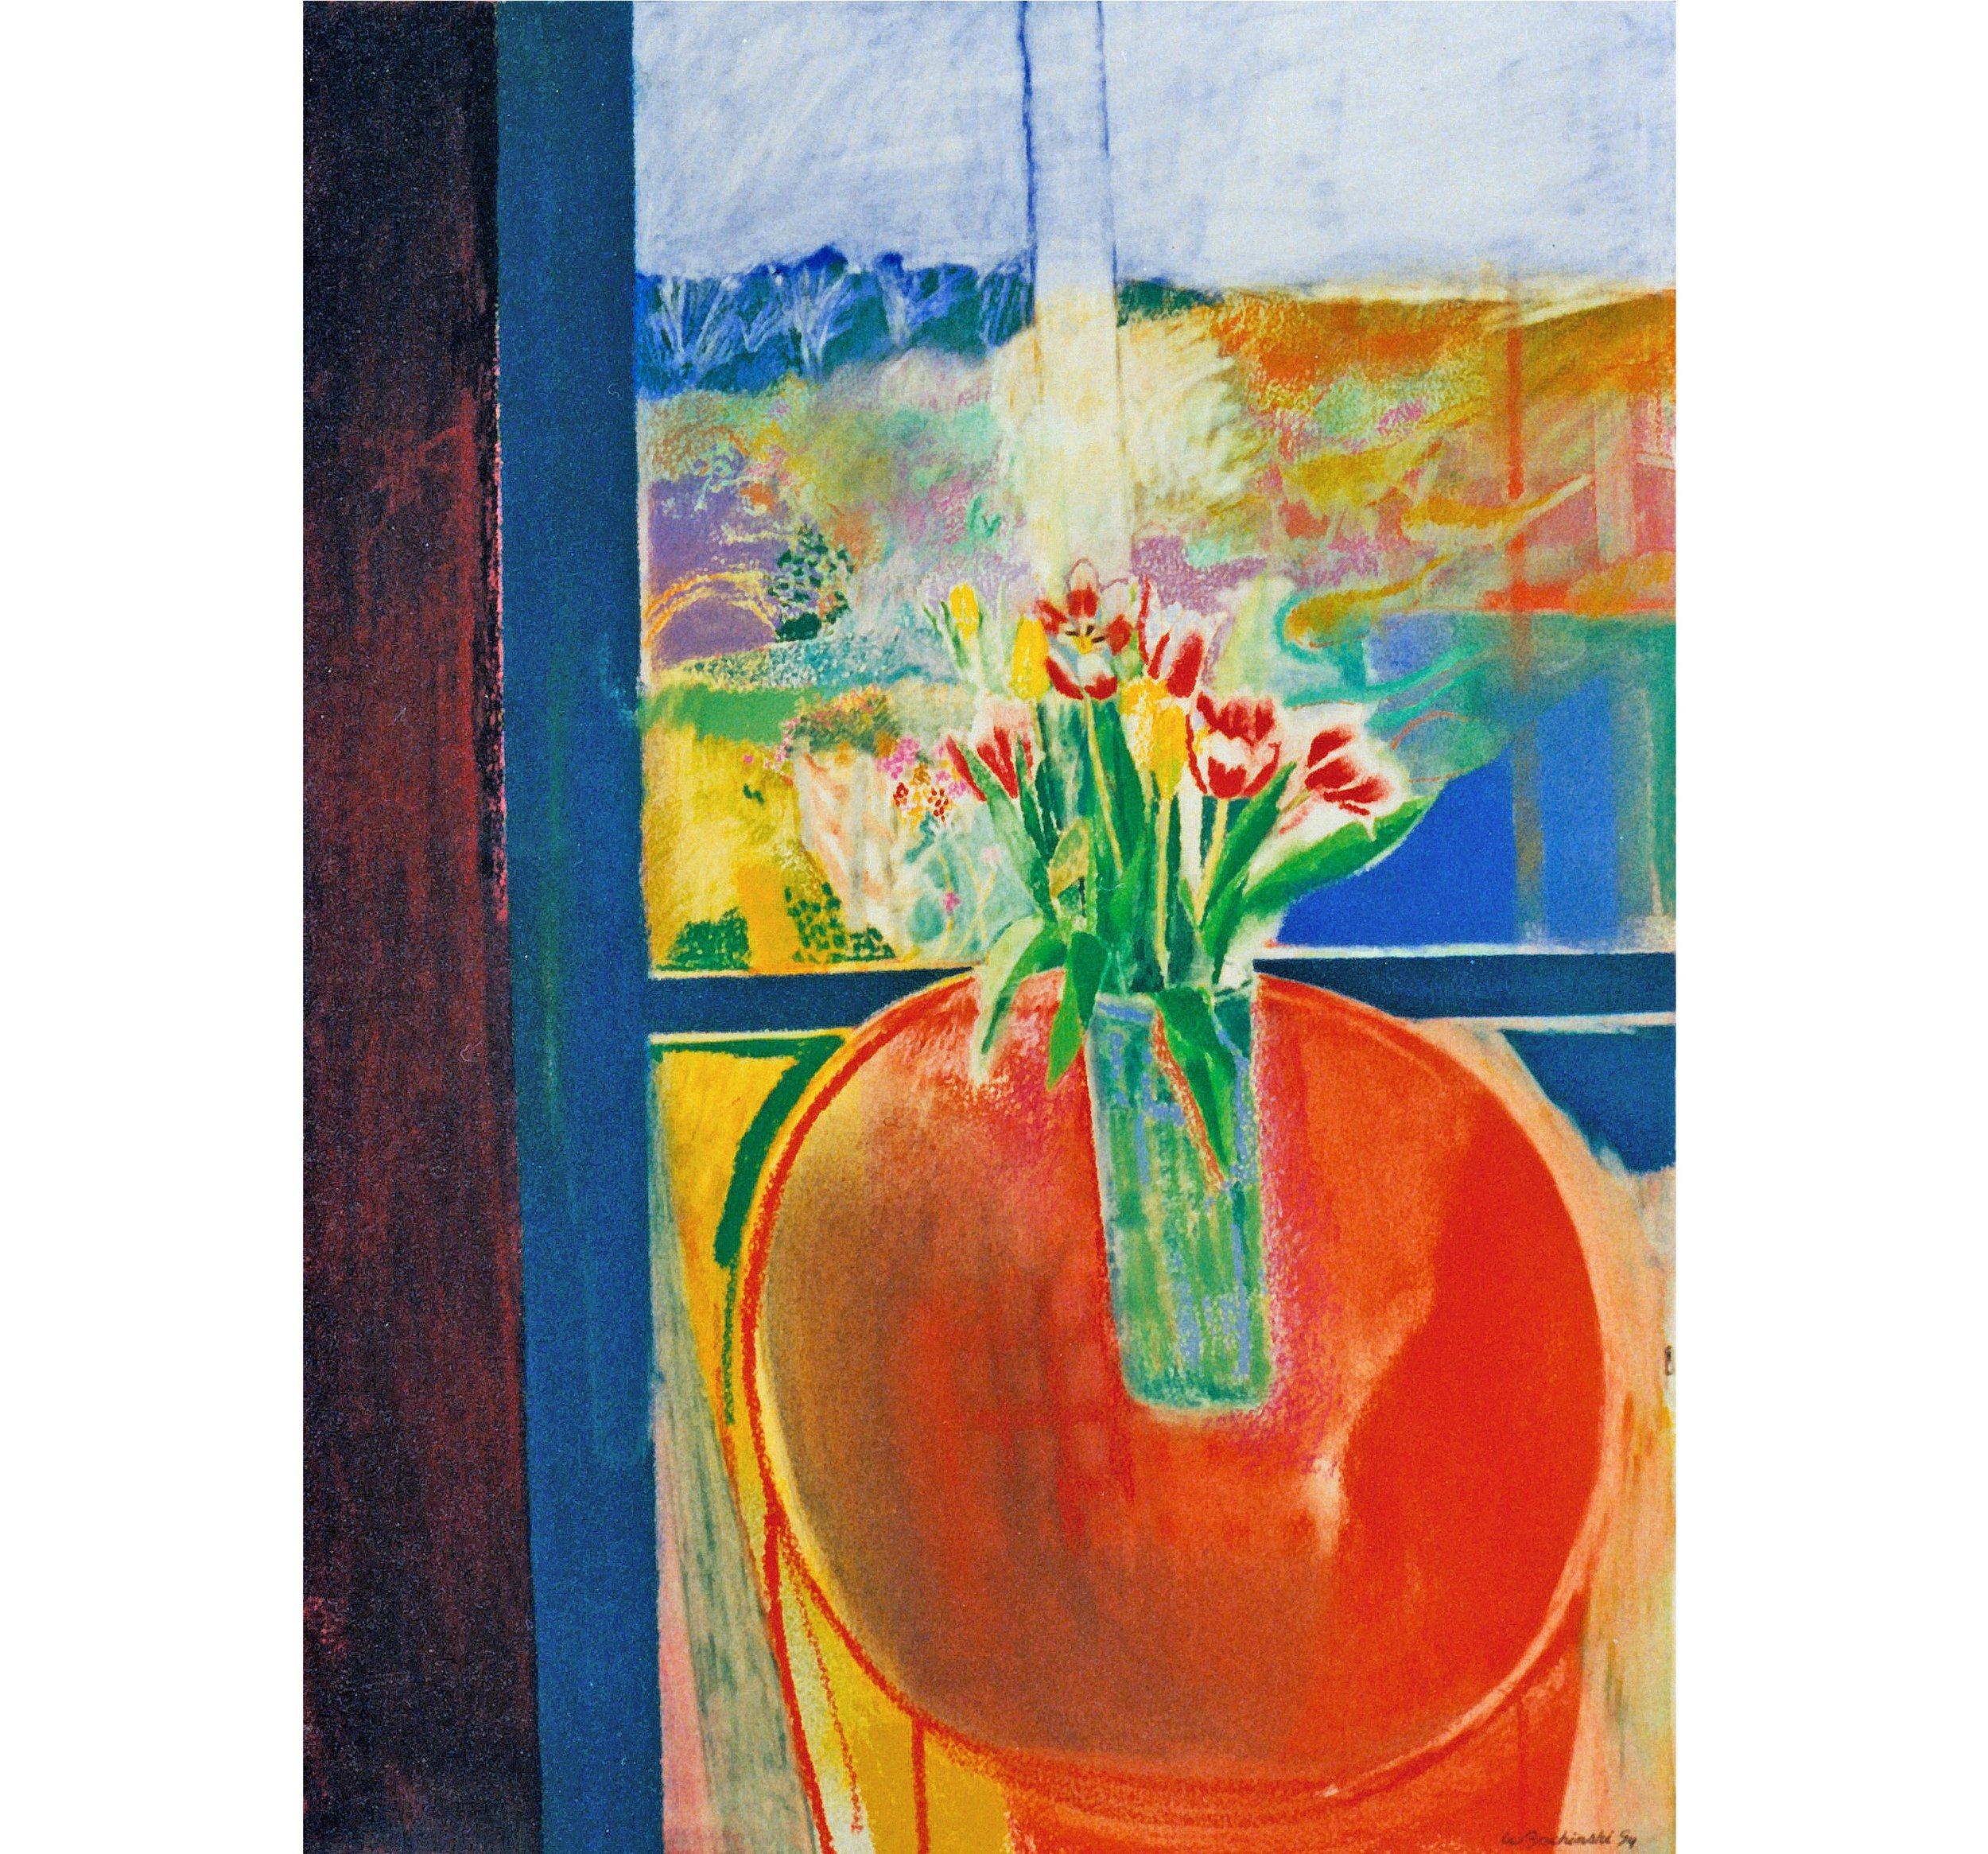 Tulip in a Glass Vase, Shanty Bay Spring, 1994, 29.25 x 21.75 inches, Pastel on paper